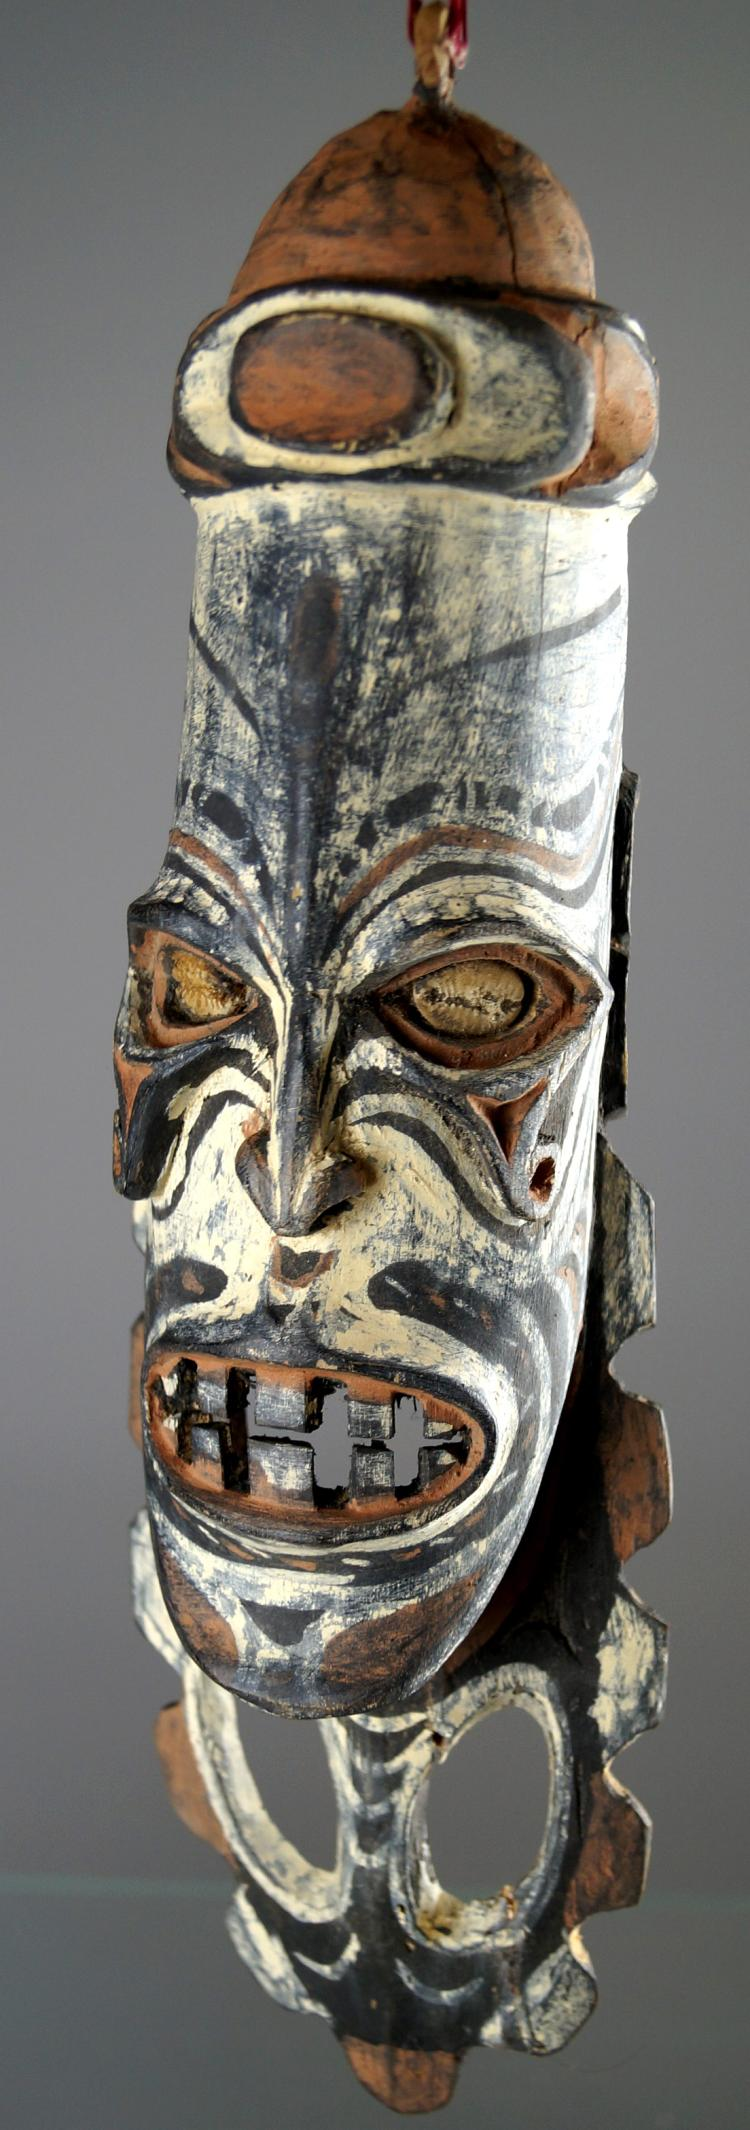 SEPIK RIVER FIGURAL STAFF MOUNT. HEIGHT 13